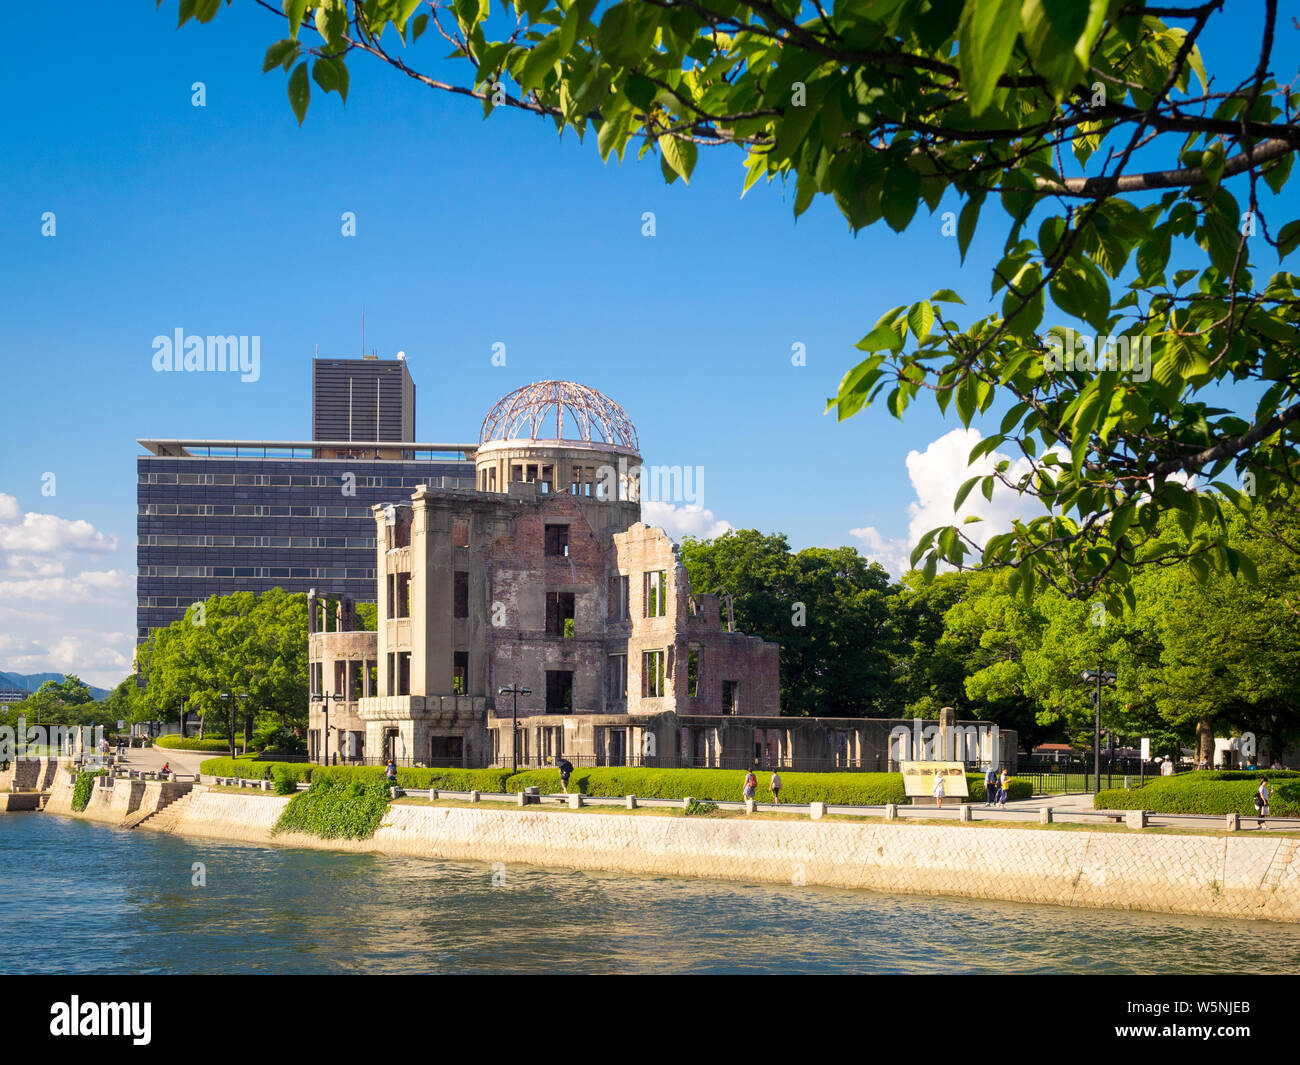 The Hiroshima Peace Memorial (Genbaku Dome, Atomic Bomb Dome or A-Bomb Dome) and the Ota River in Hiroshima, Japan. Stock Photo